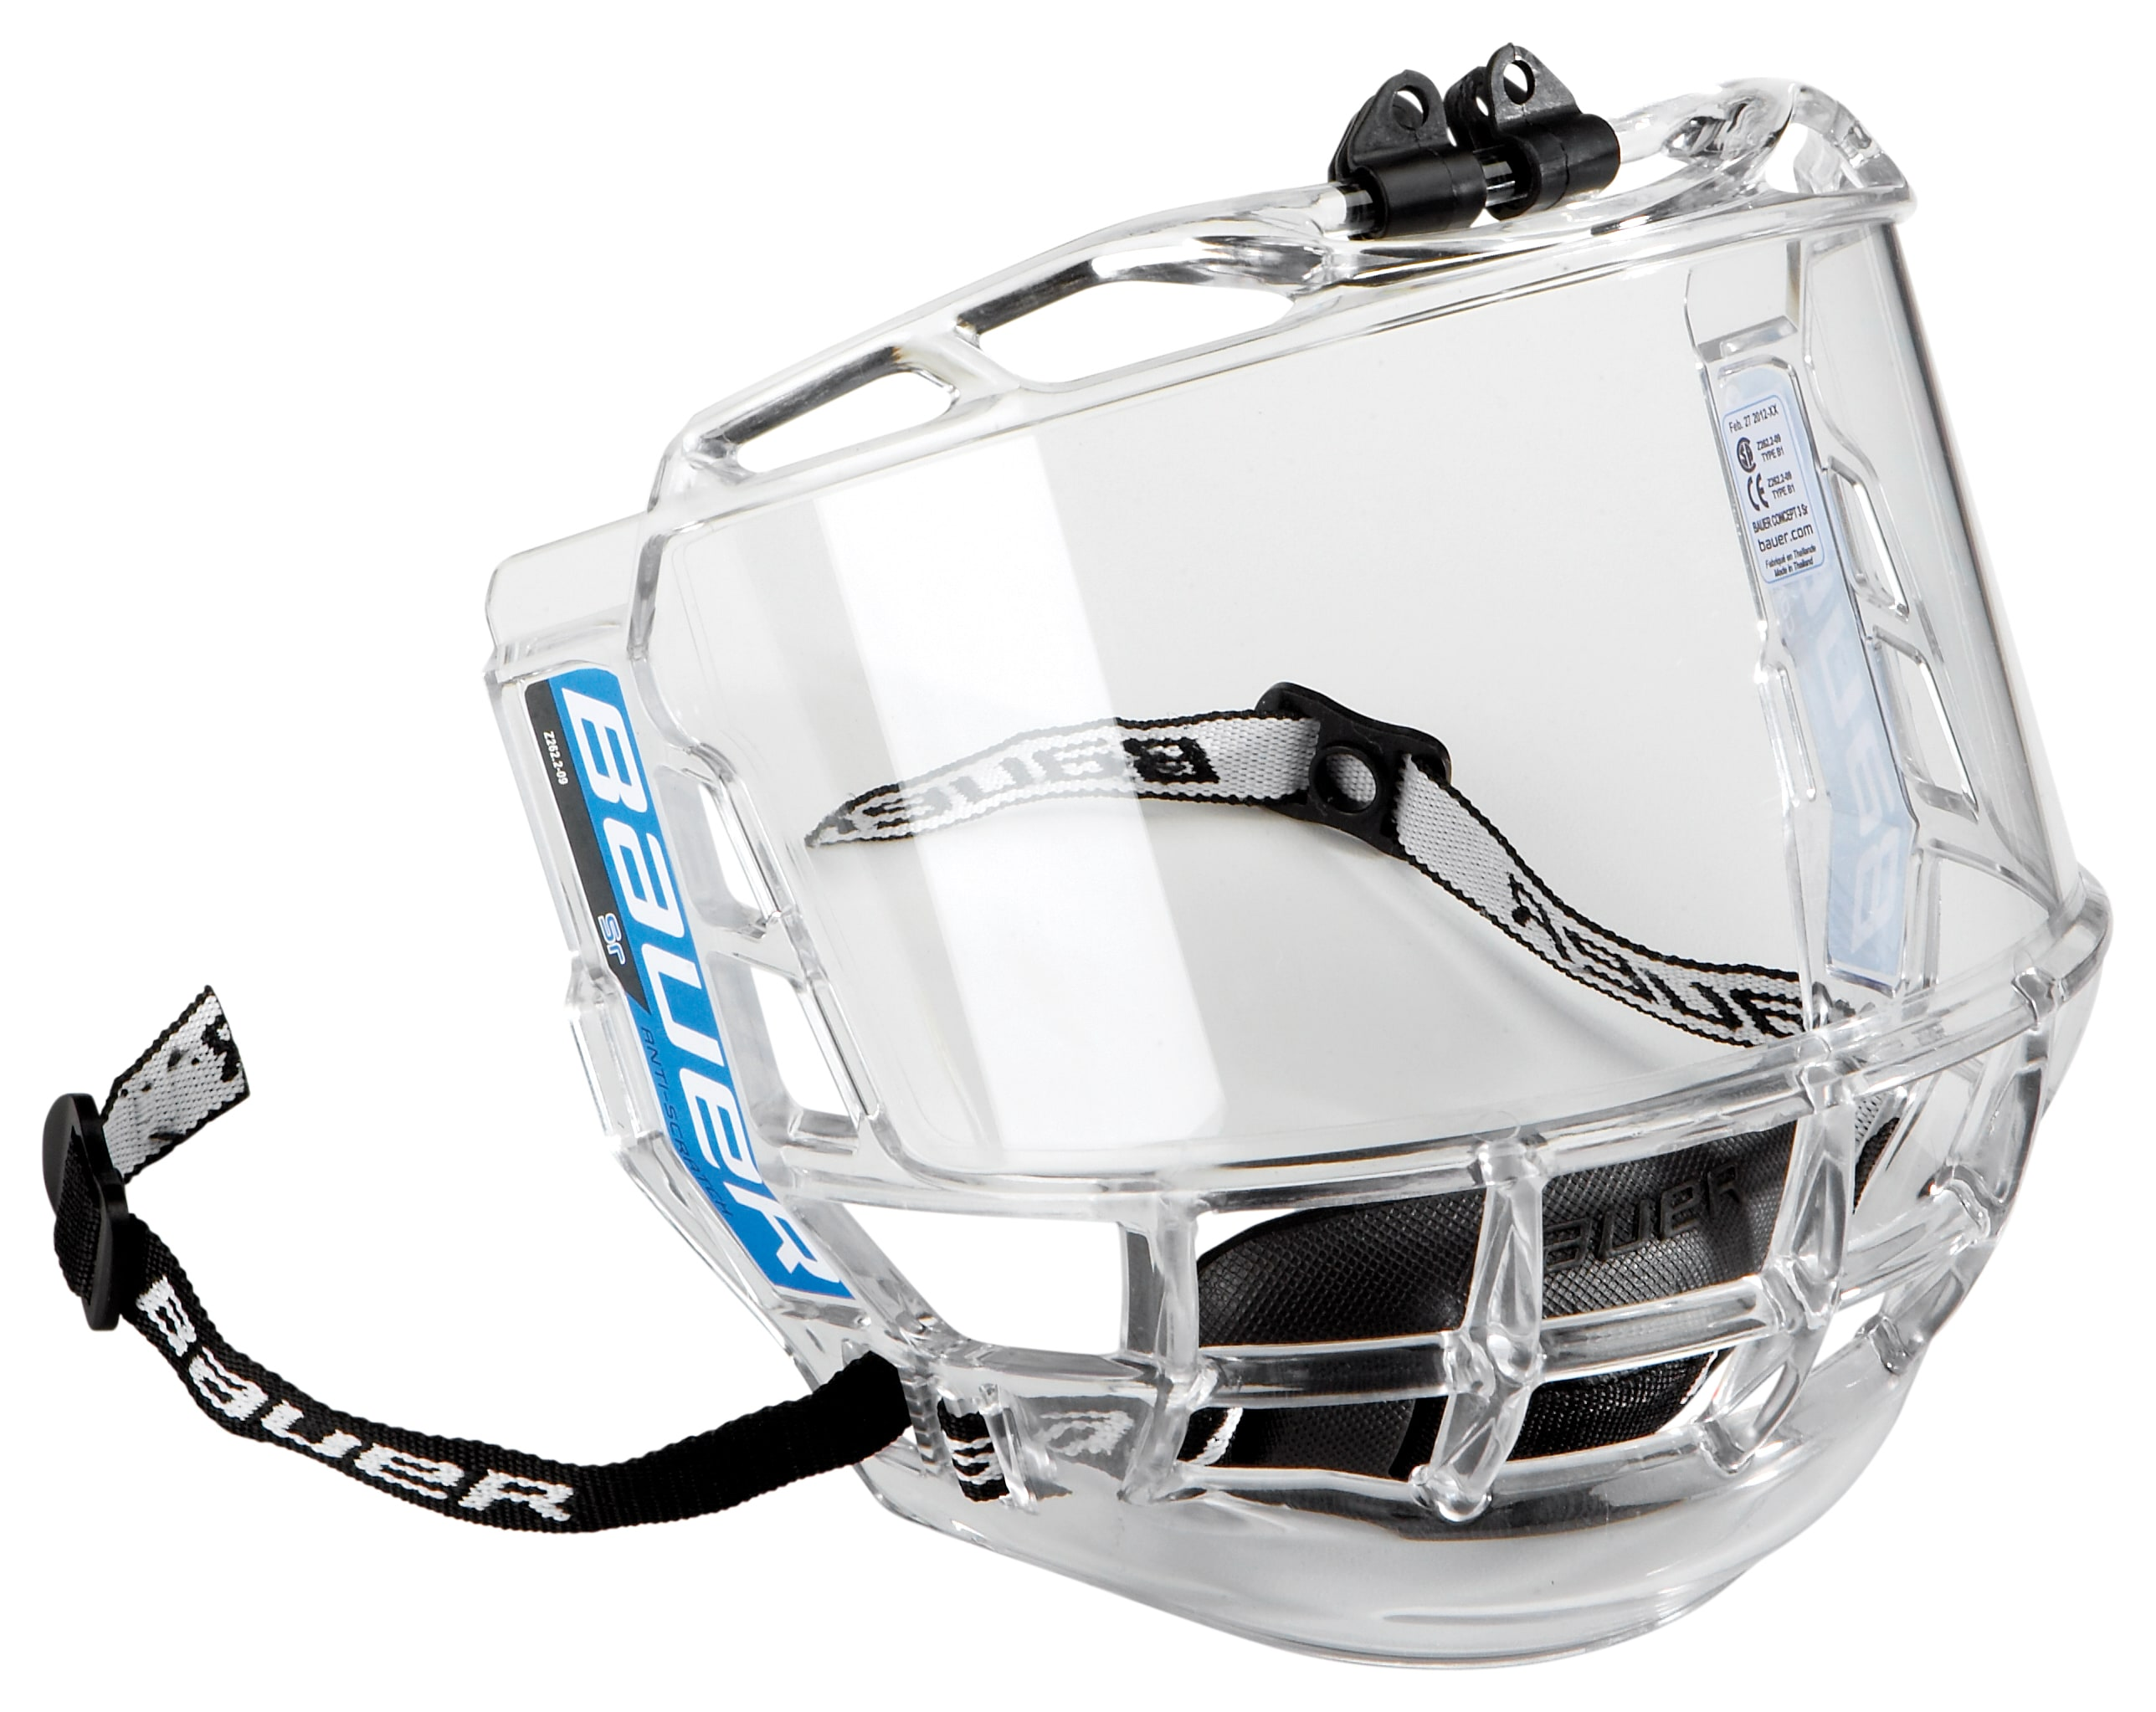 Image of Bauer Concept 3 Hockey Helmet Visor - Senior